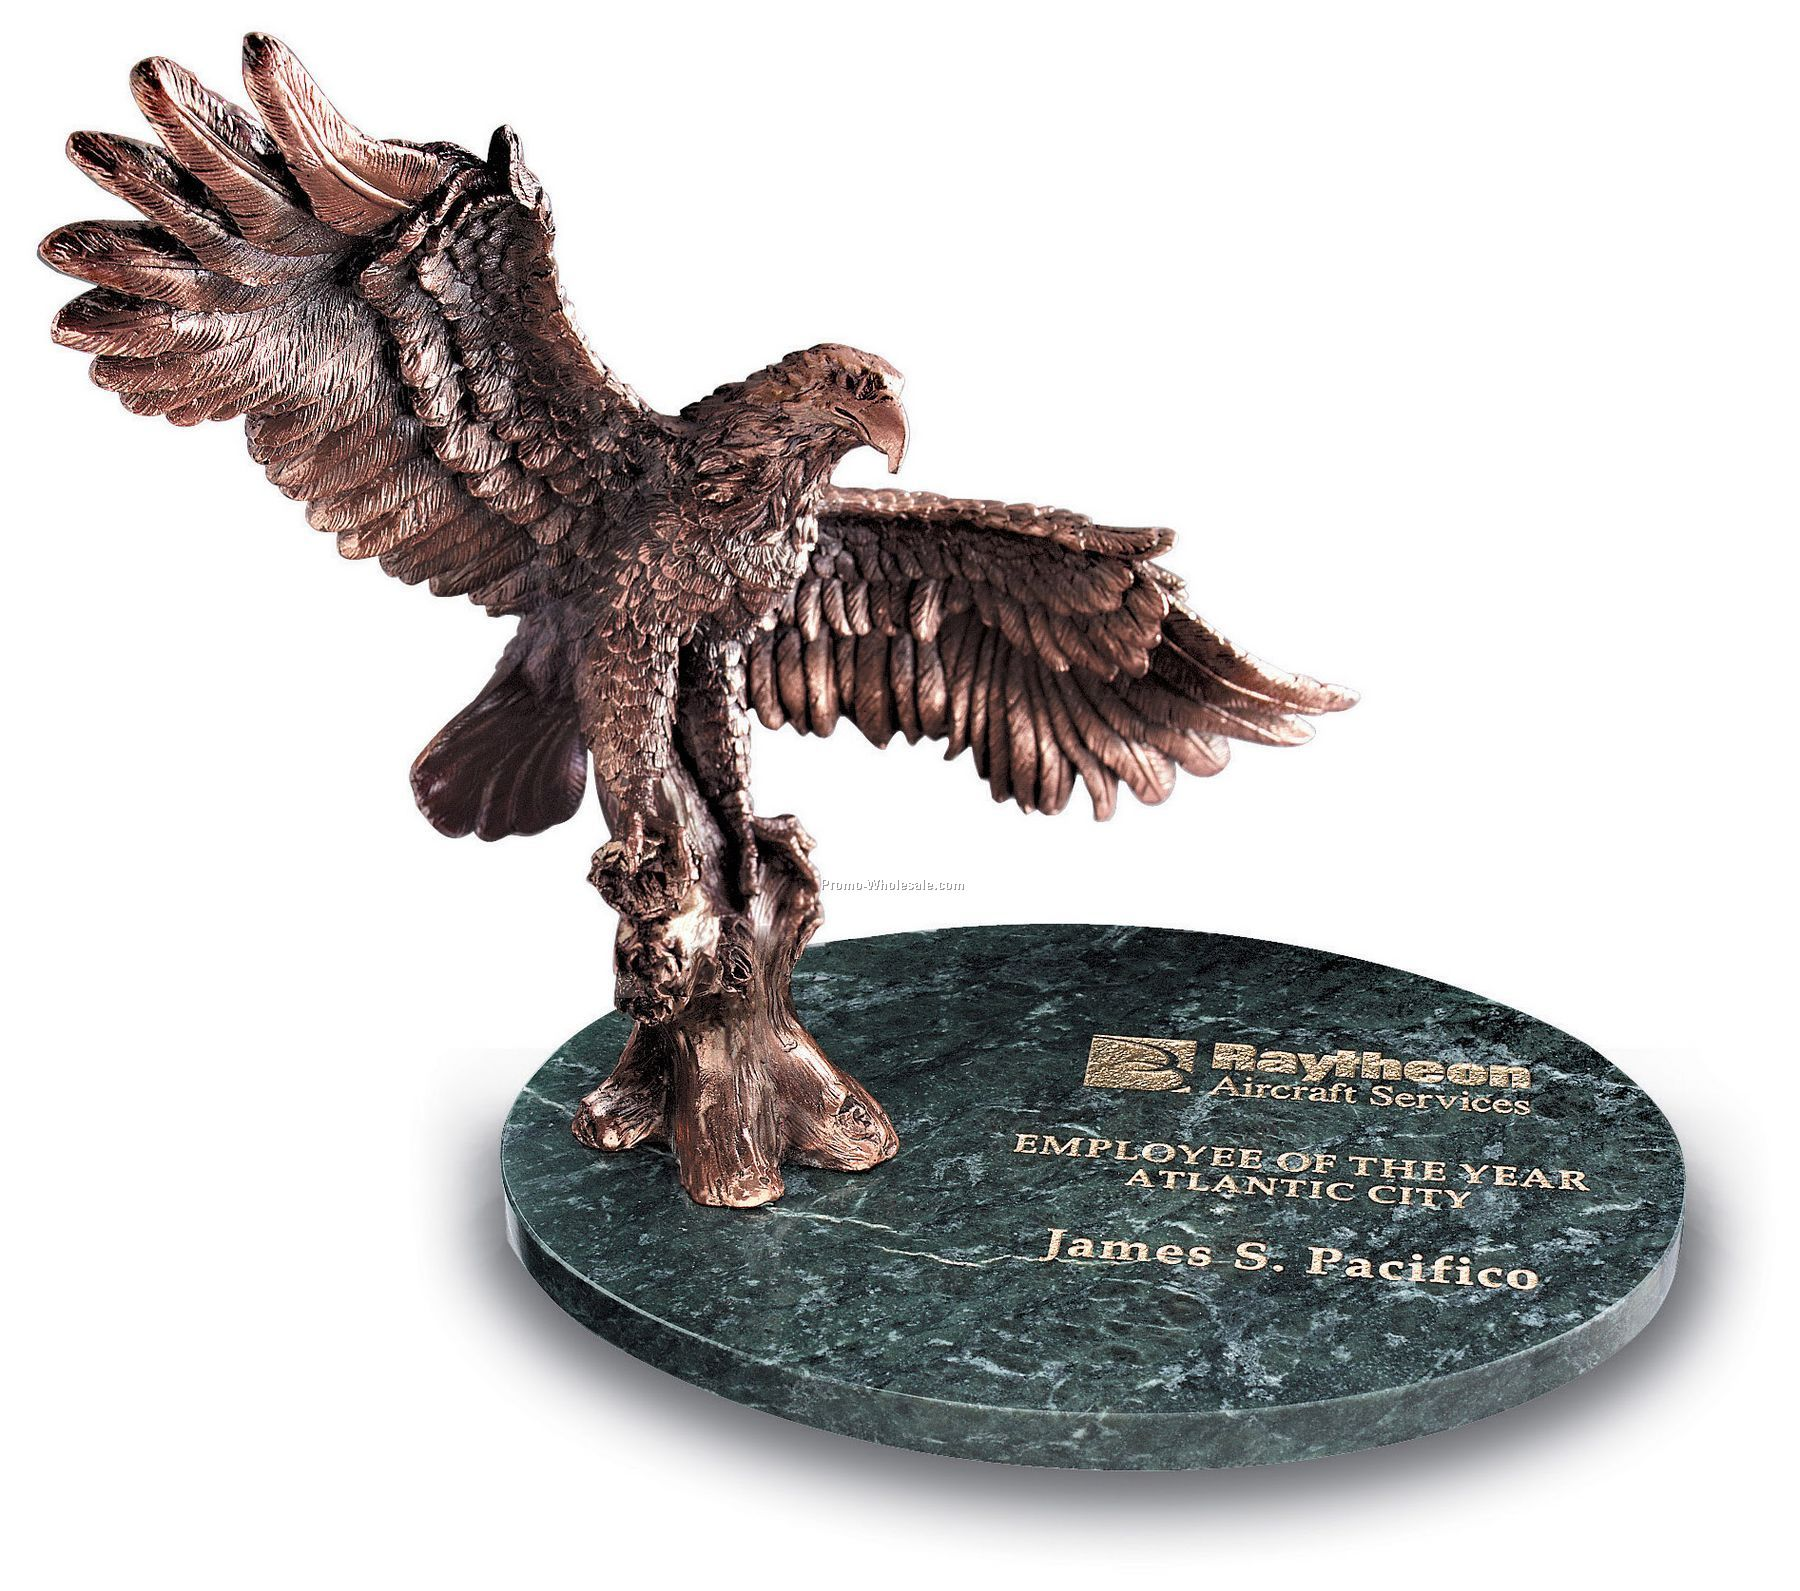 Small Victory Eagle Award W/ Green Marble Oval Base